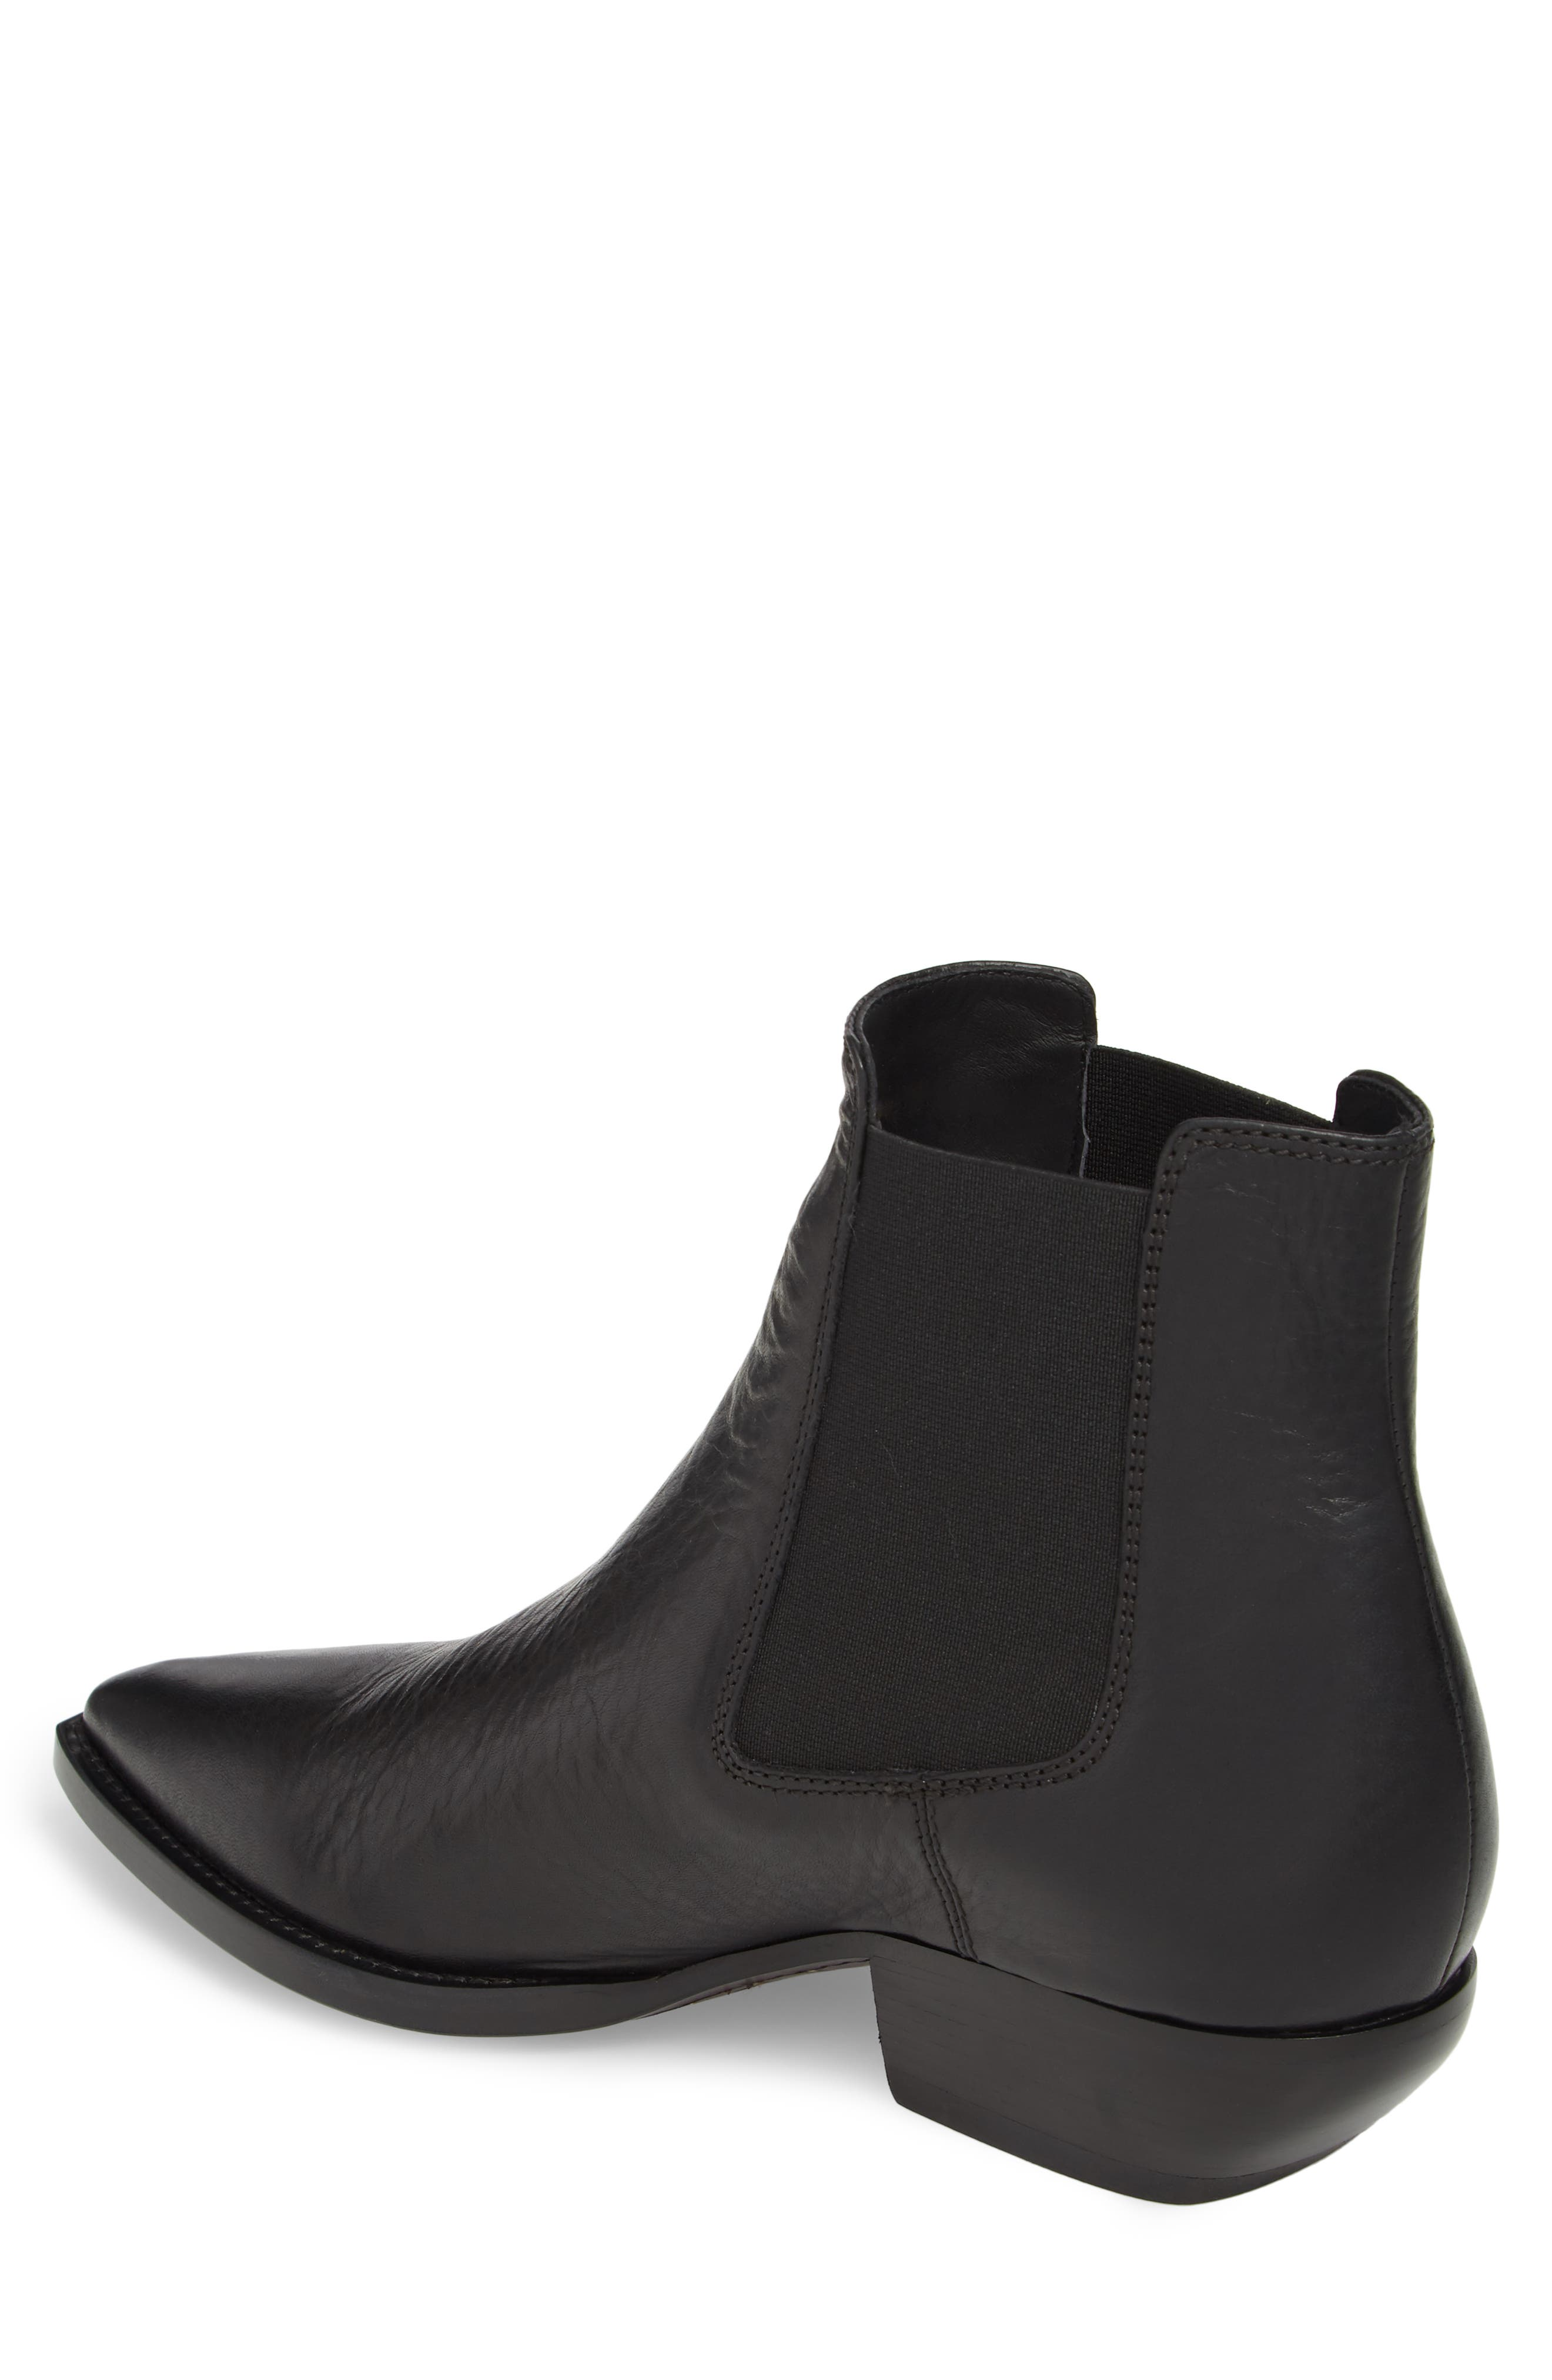 Theo 40 Chelsea Boot,                             Alternate thumbnail 2, color,                             Black Leather